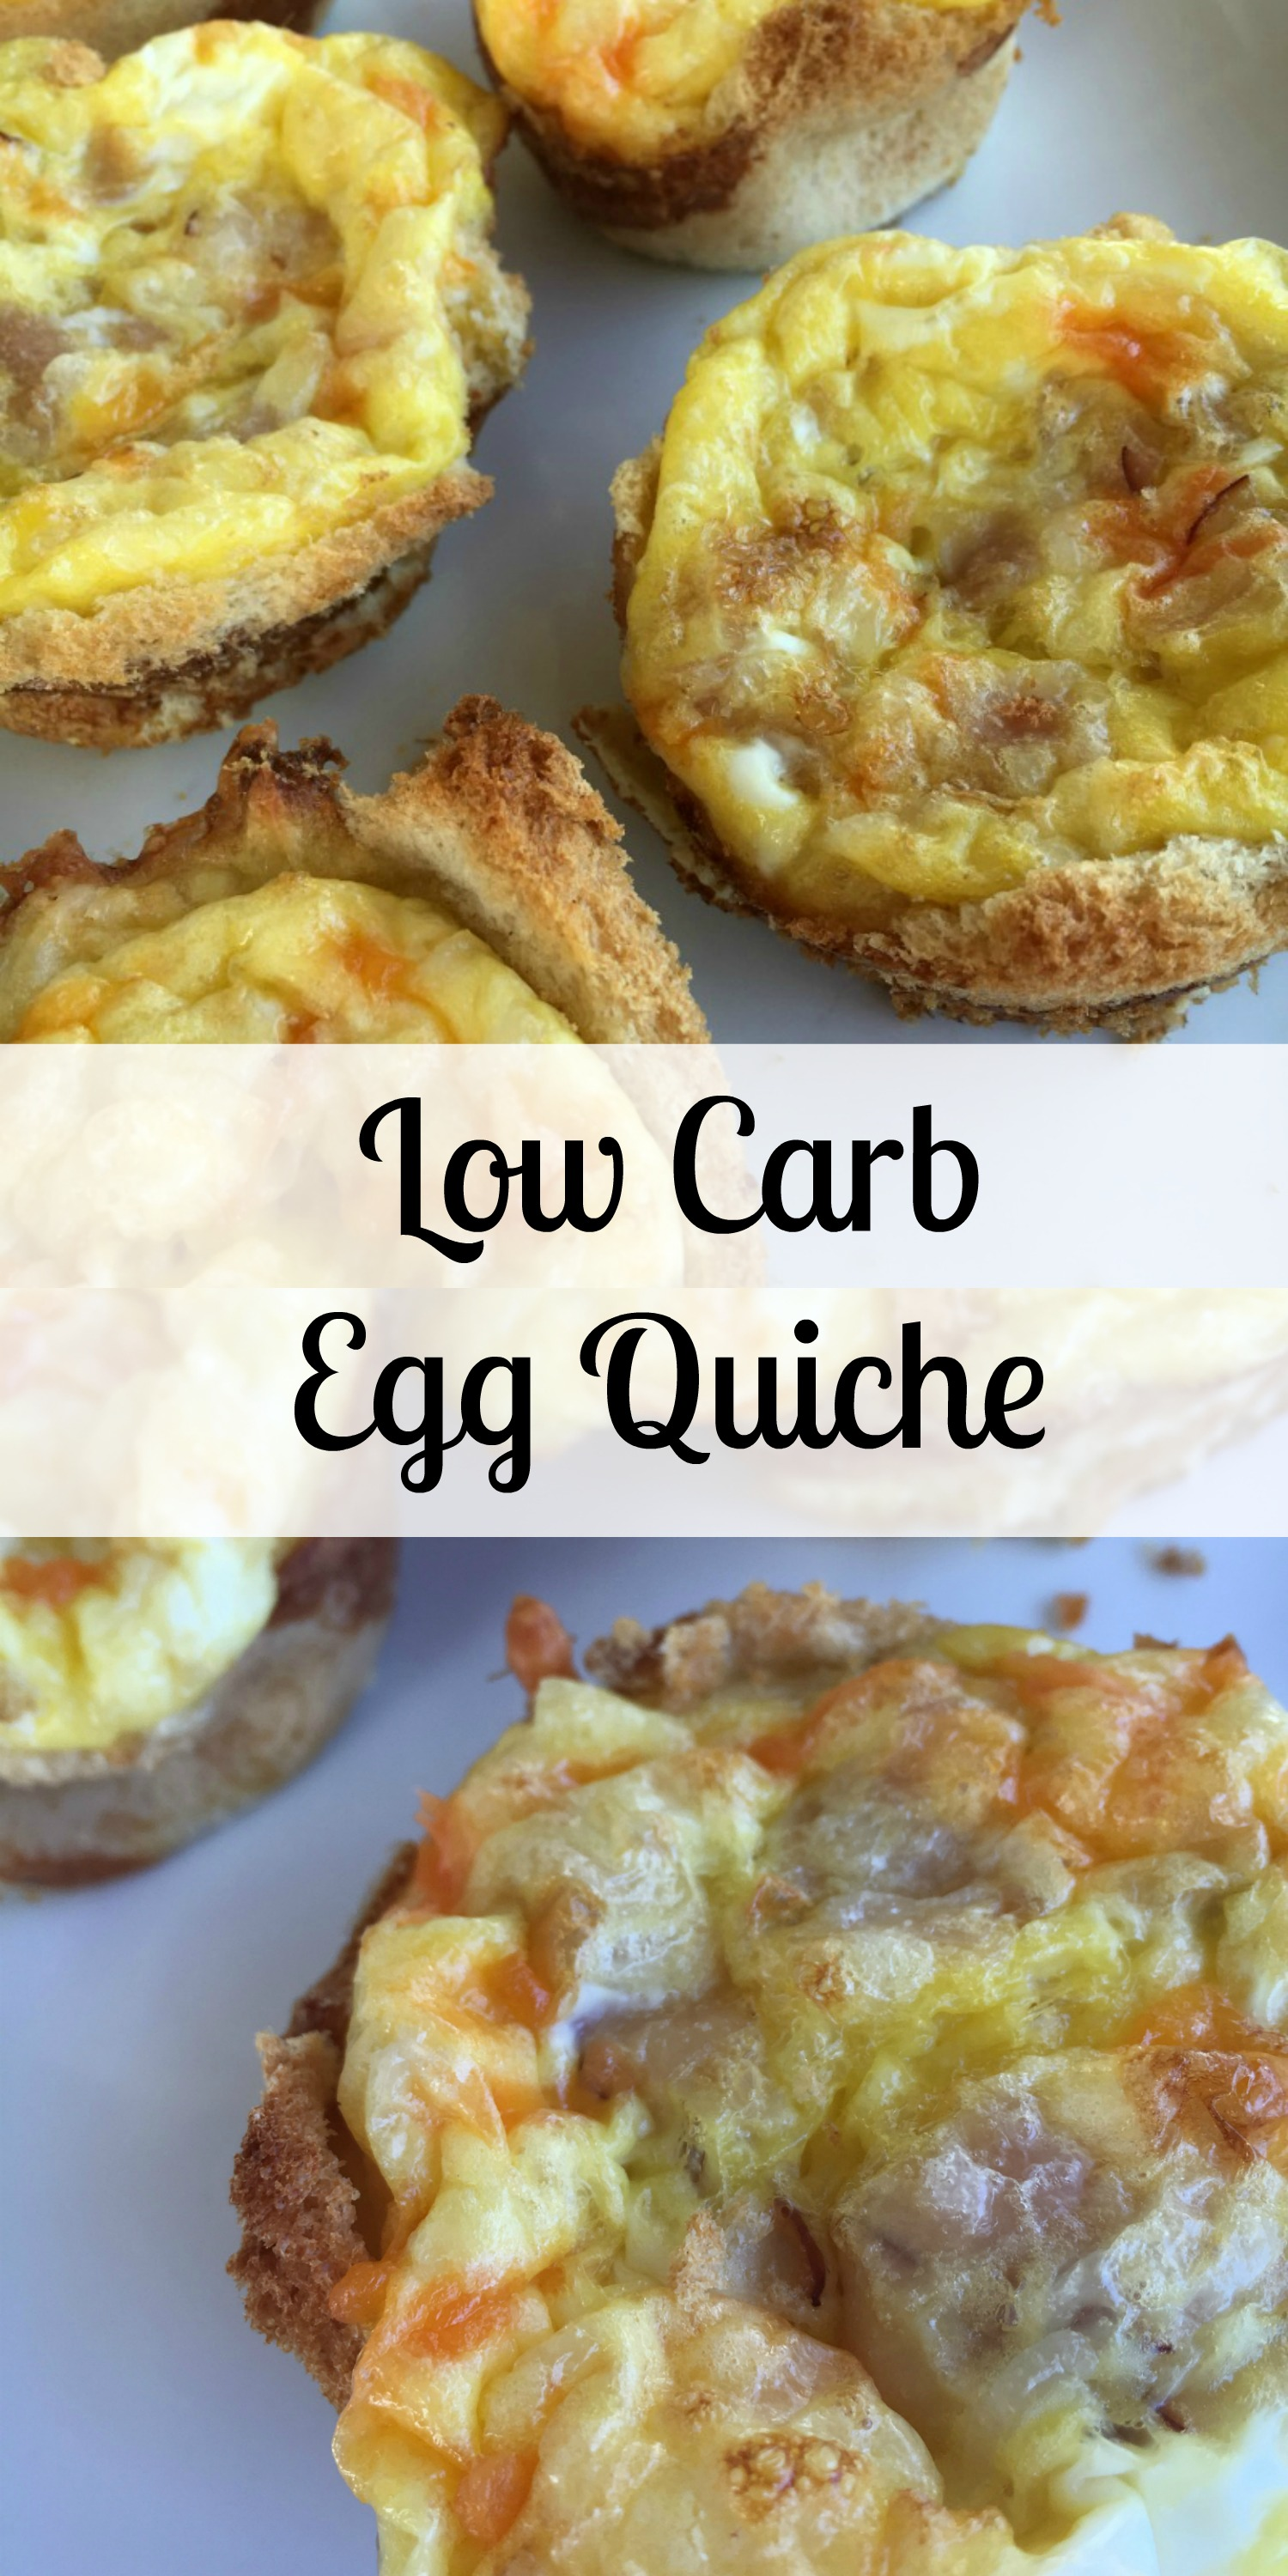 Egg Quiche--perfect breakfast for busy mornings! Just grab and go!